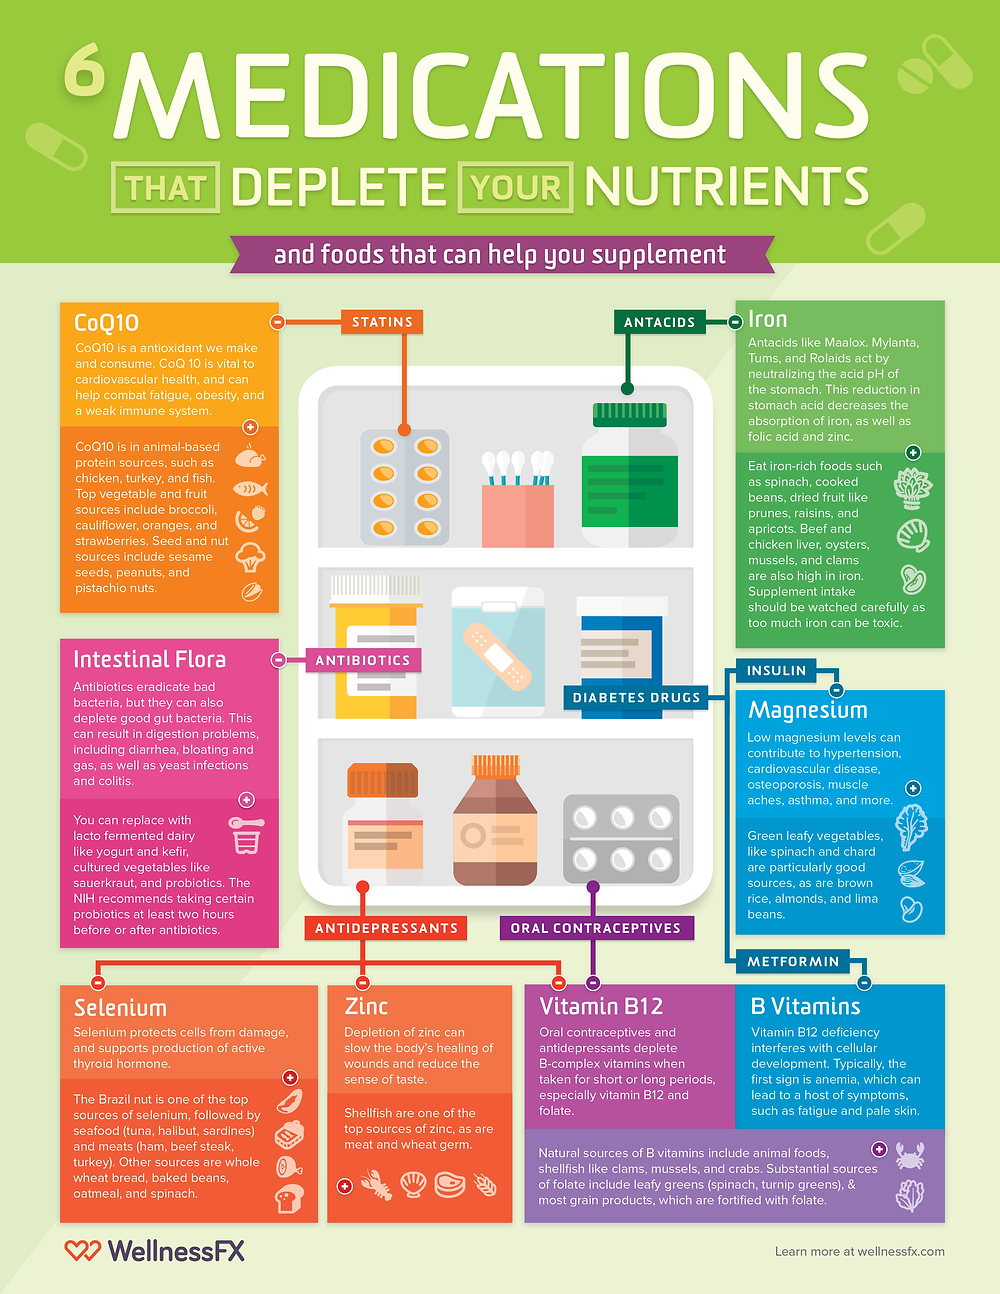 WellnessFX-Nutrient-depletion-infographic-FINAL.png